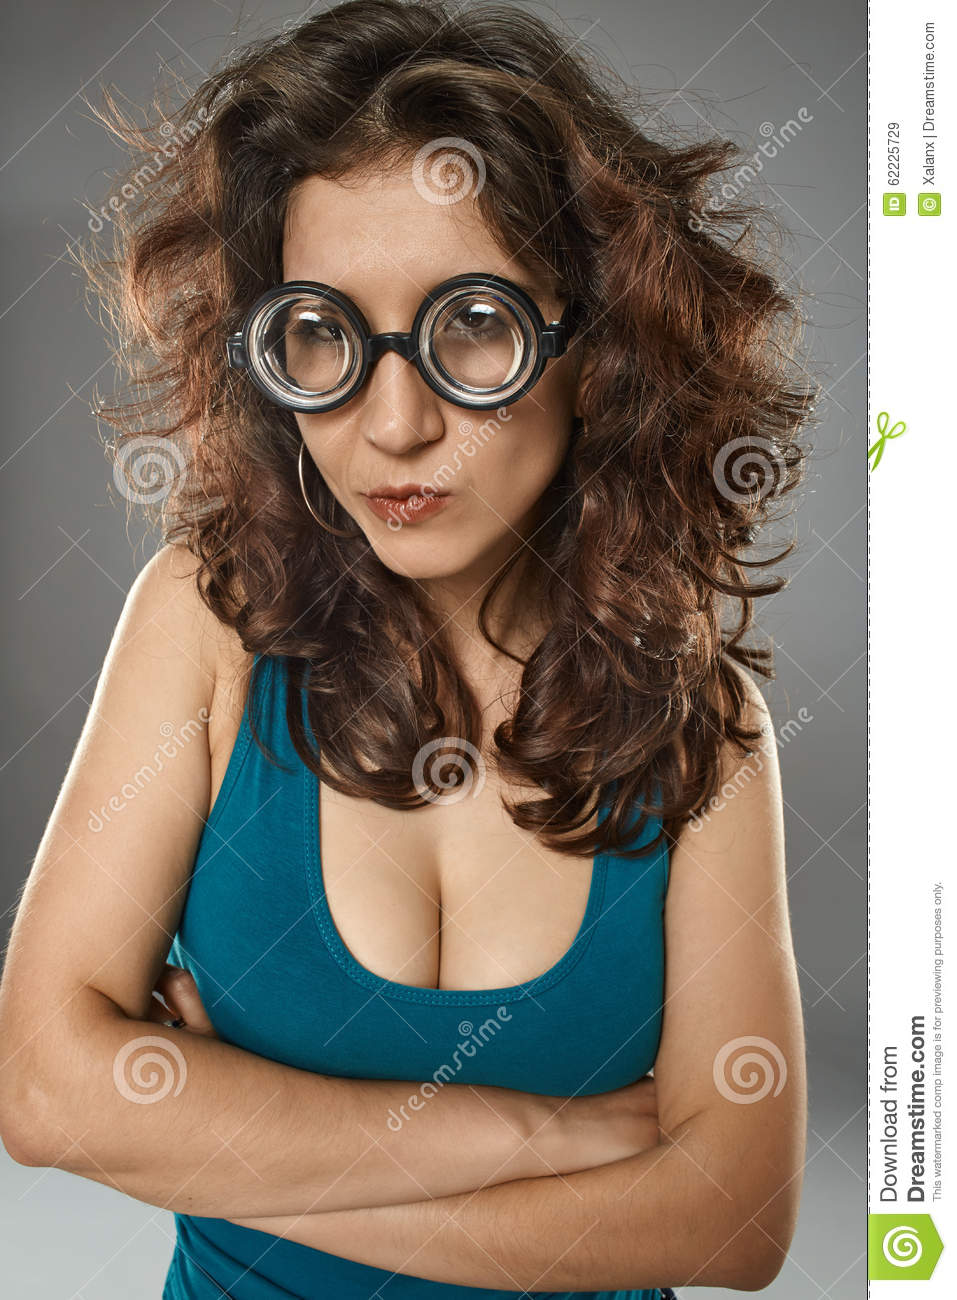 Girls with geeky glasses